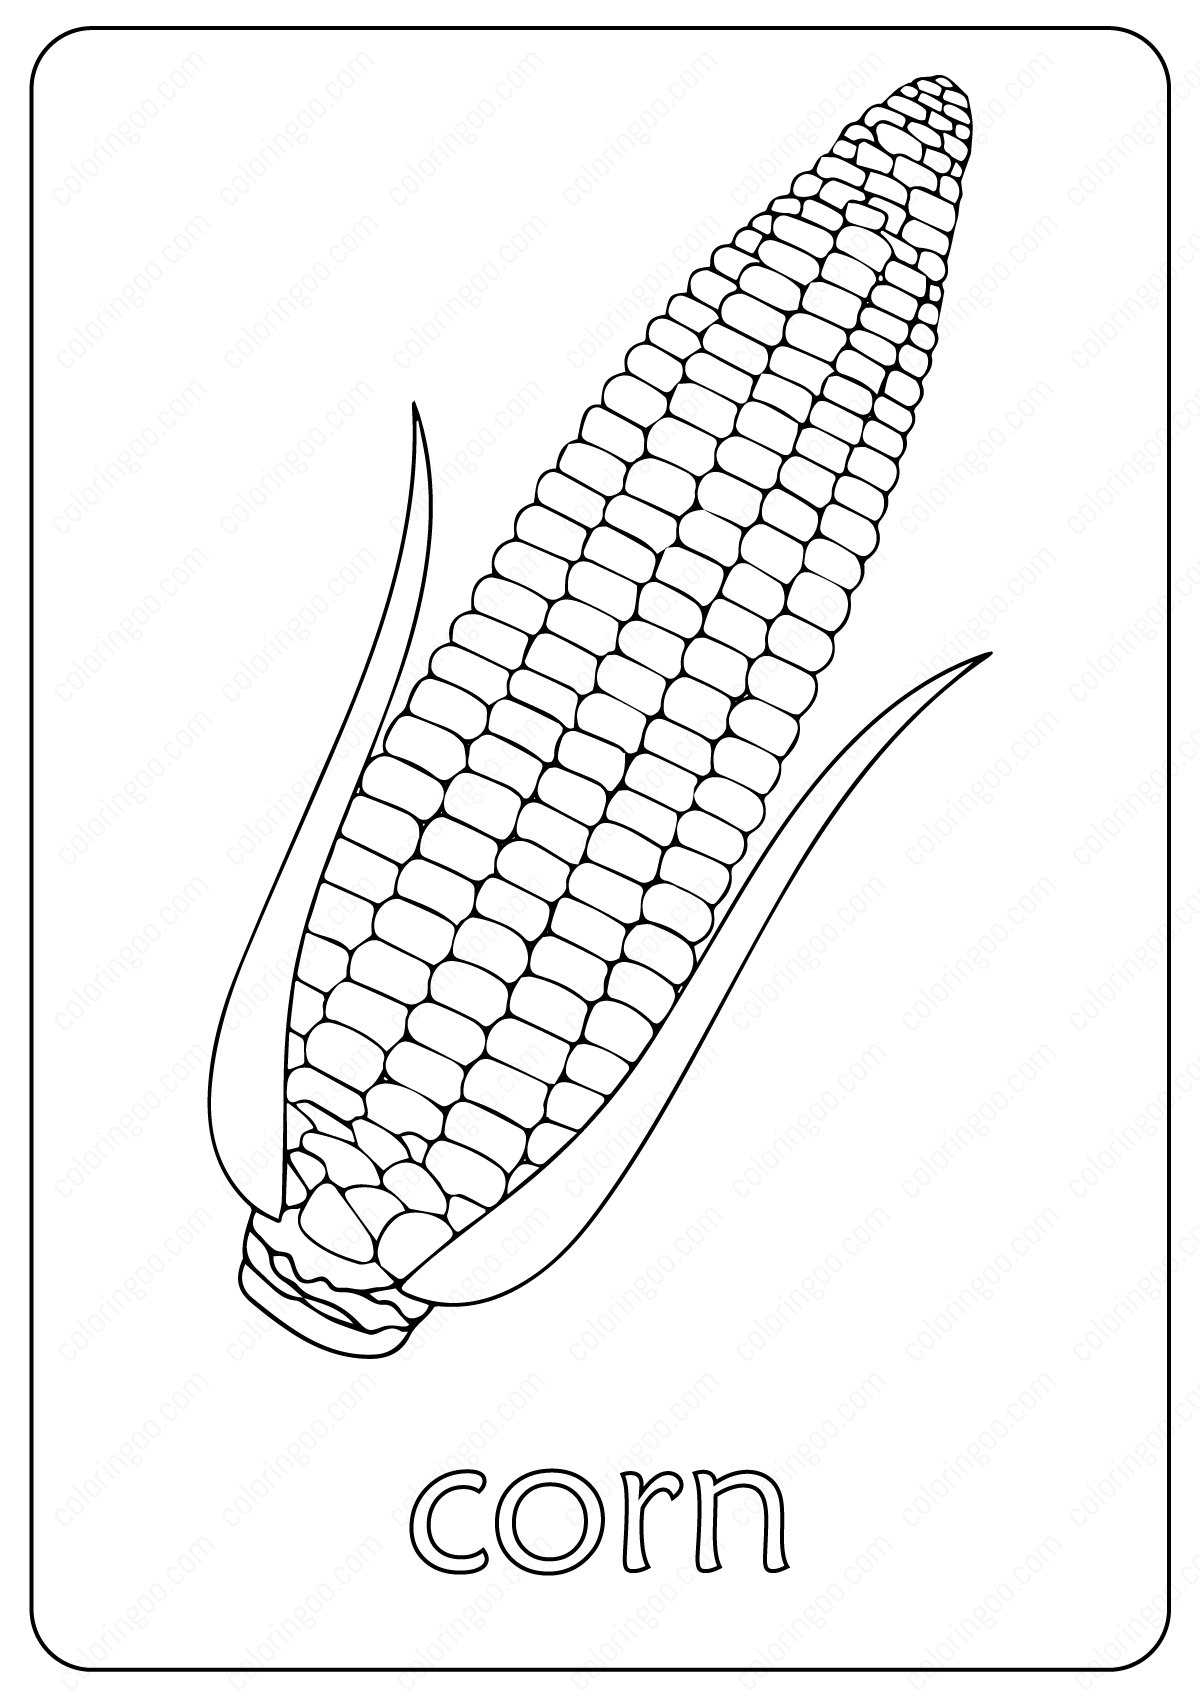 Free Printable Corn Maize Coloring Pages Corn Maize Coloring Pages Templates Printable Free